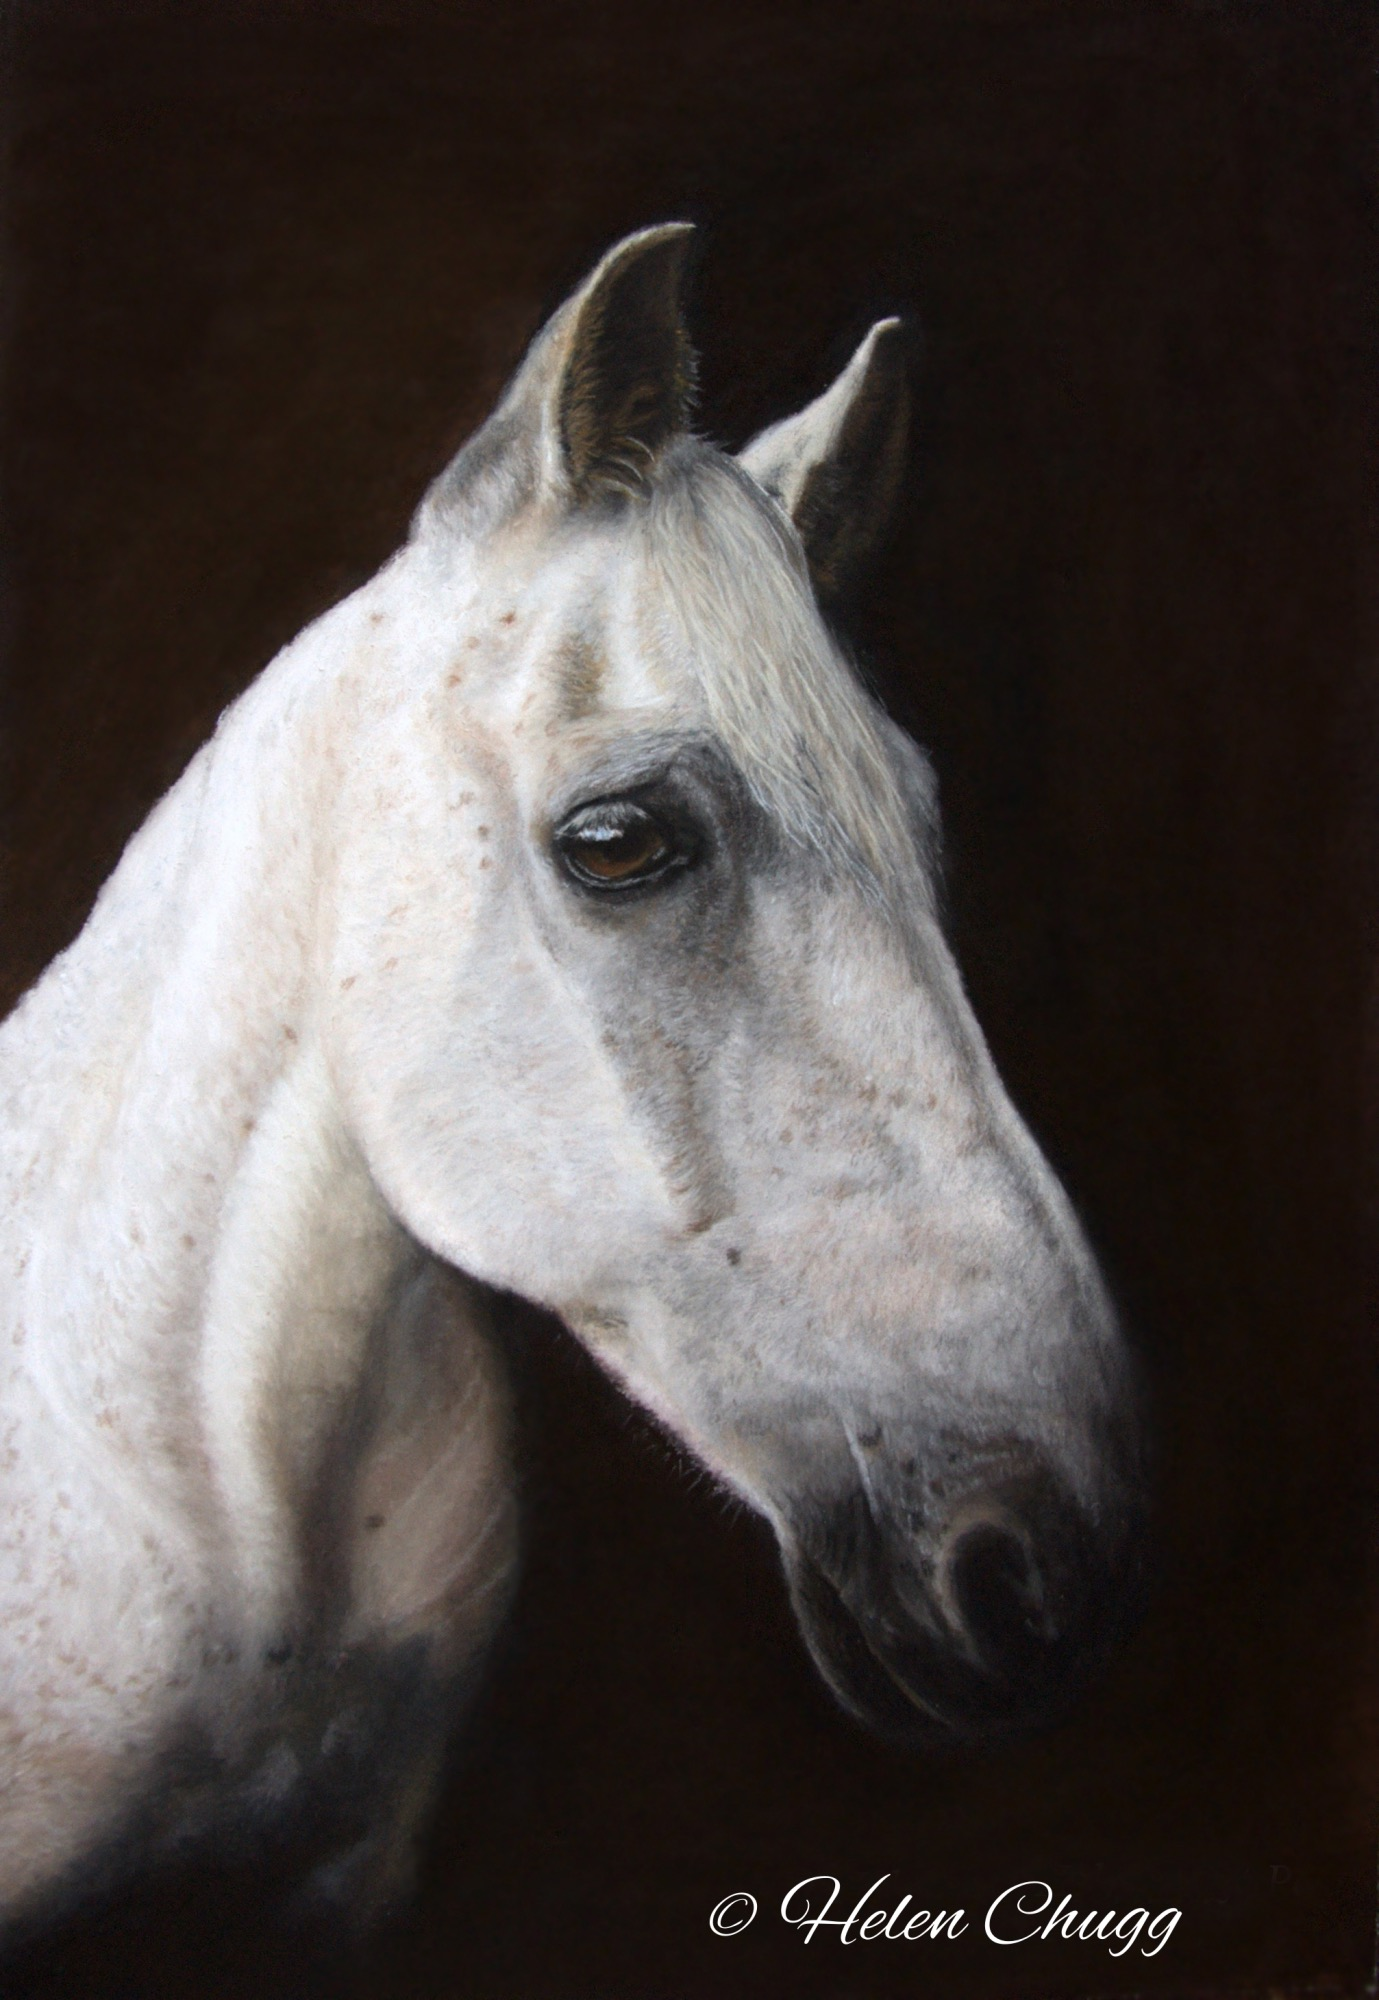 grey horse against a black background